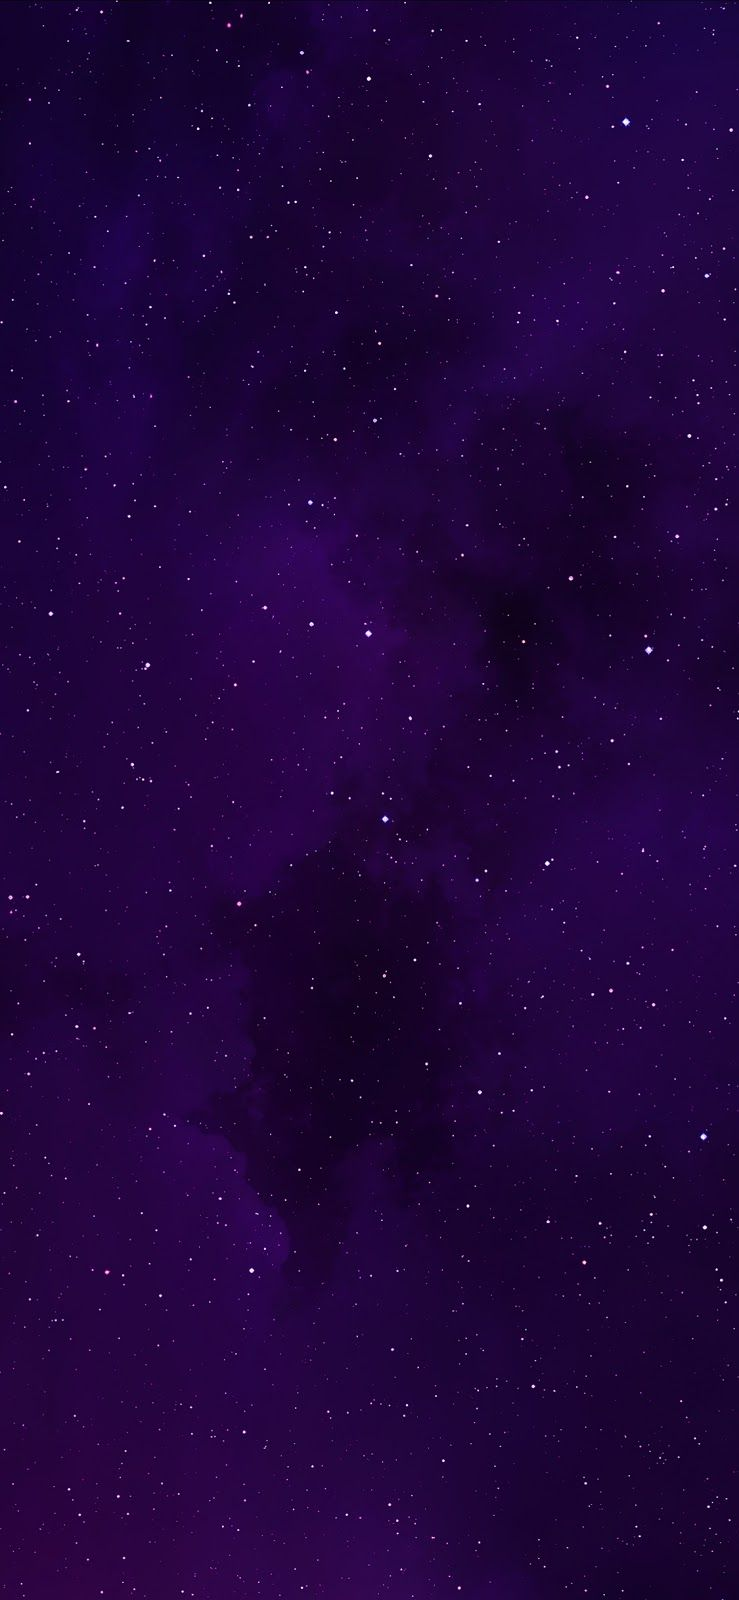 Space Iphone X Purple Wallpaper Iphone Purple Galaxy Wallpaper Purple Wallpaper Phone